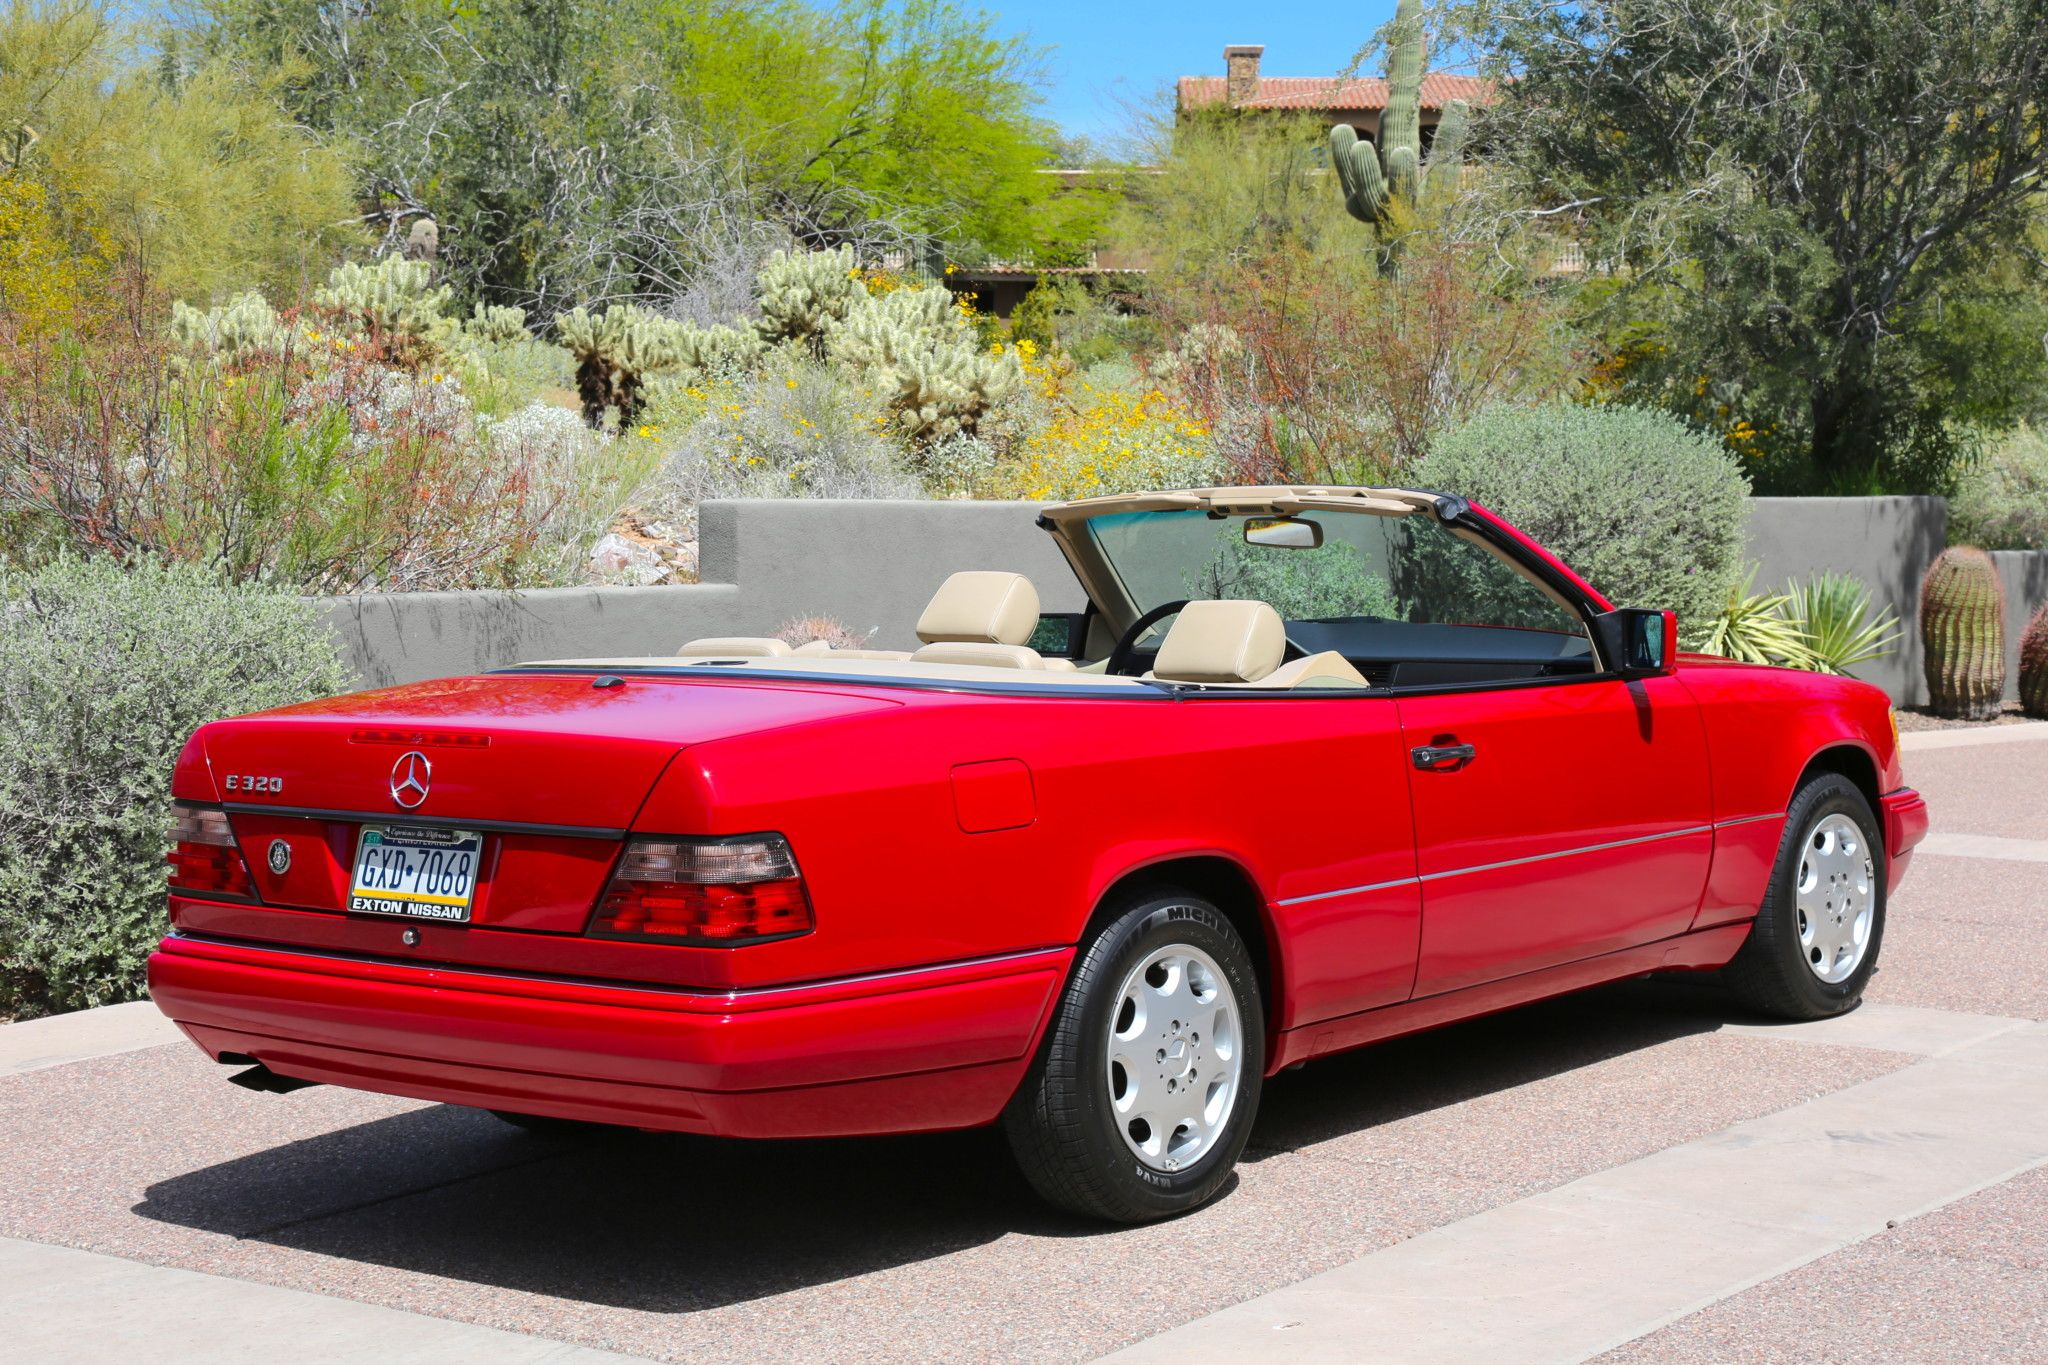 The Best 1994 Mercedes E320 Cabriolet